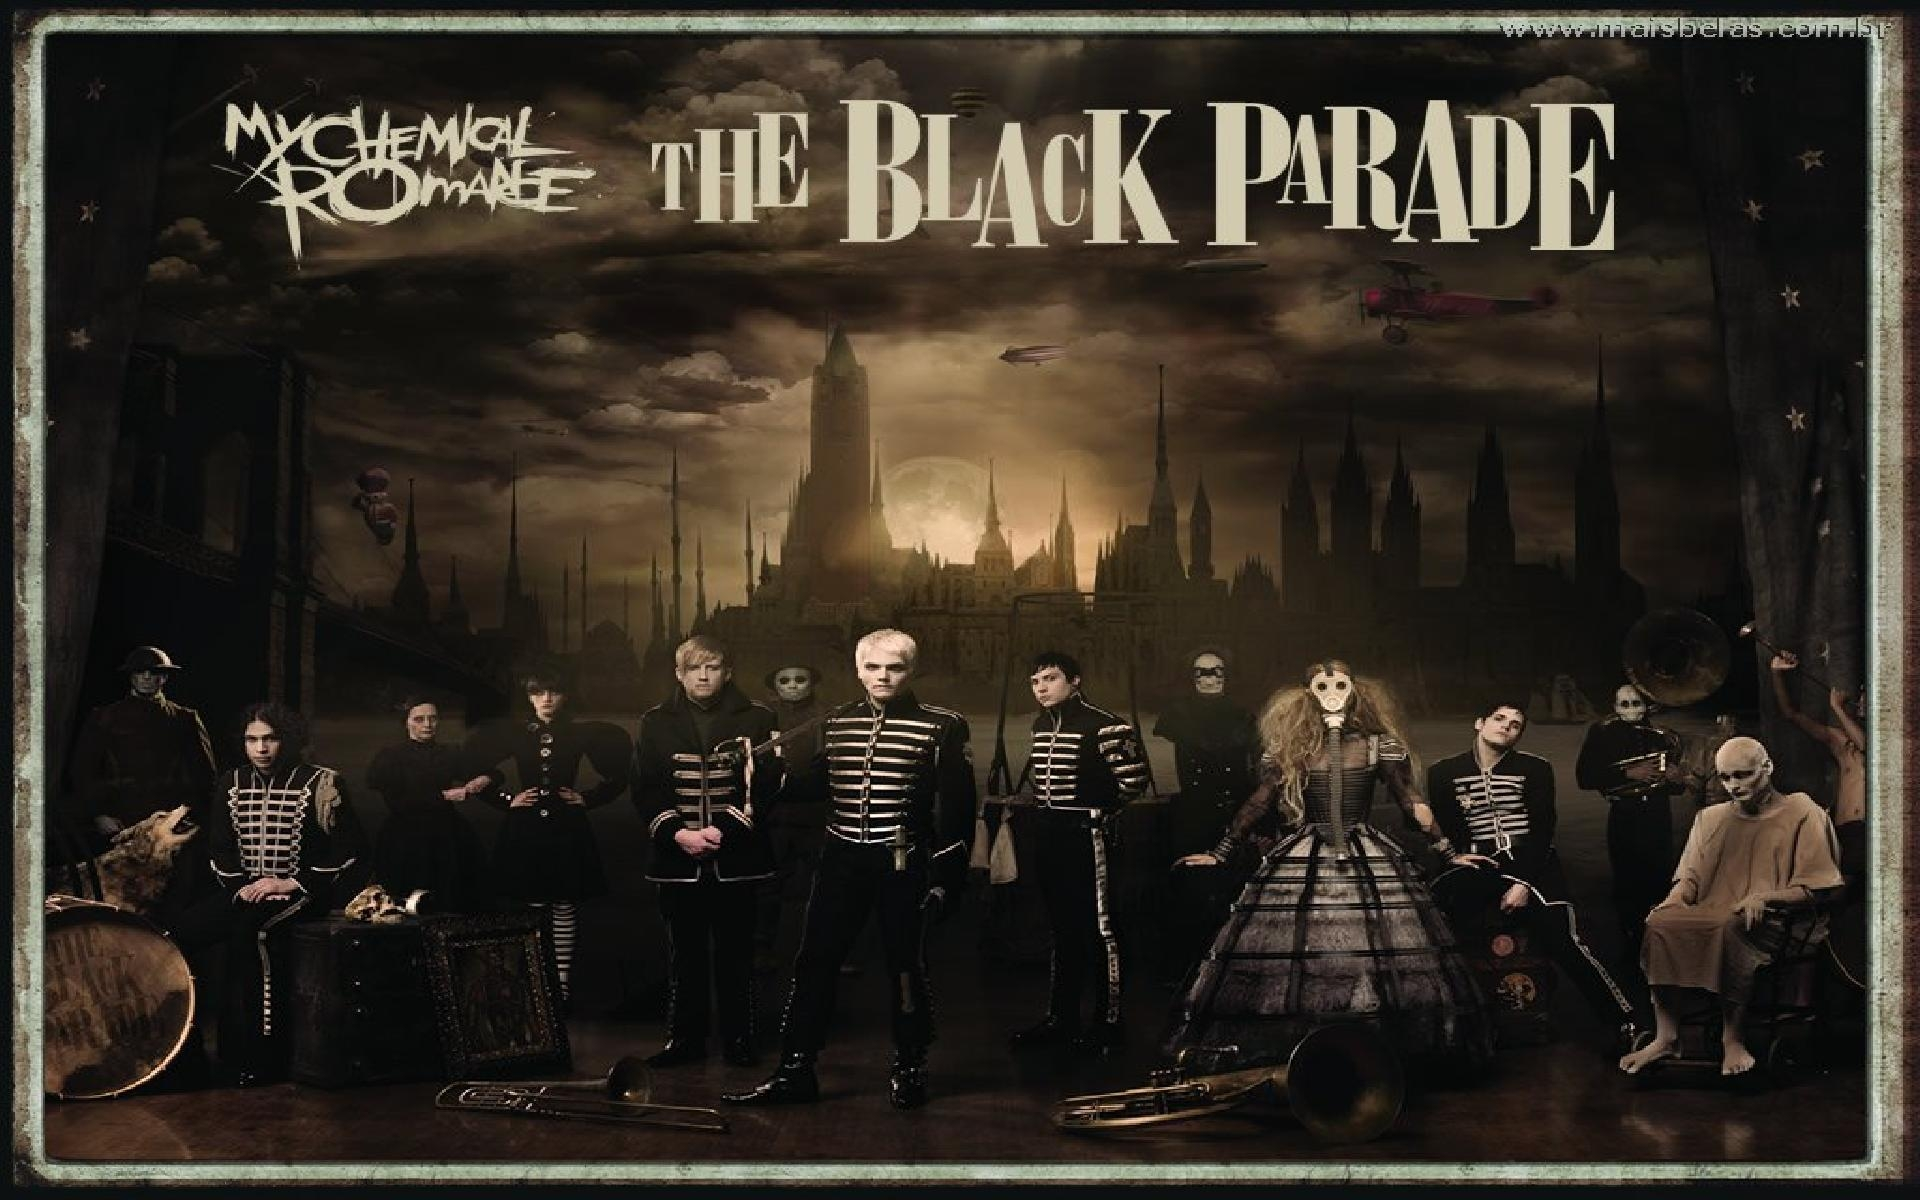 My Chemical Romance Images The Black Parade HD Wallpaper And Background Photos